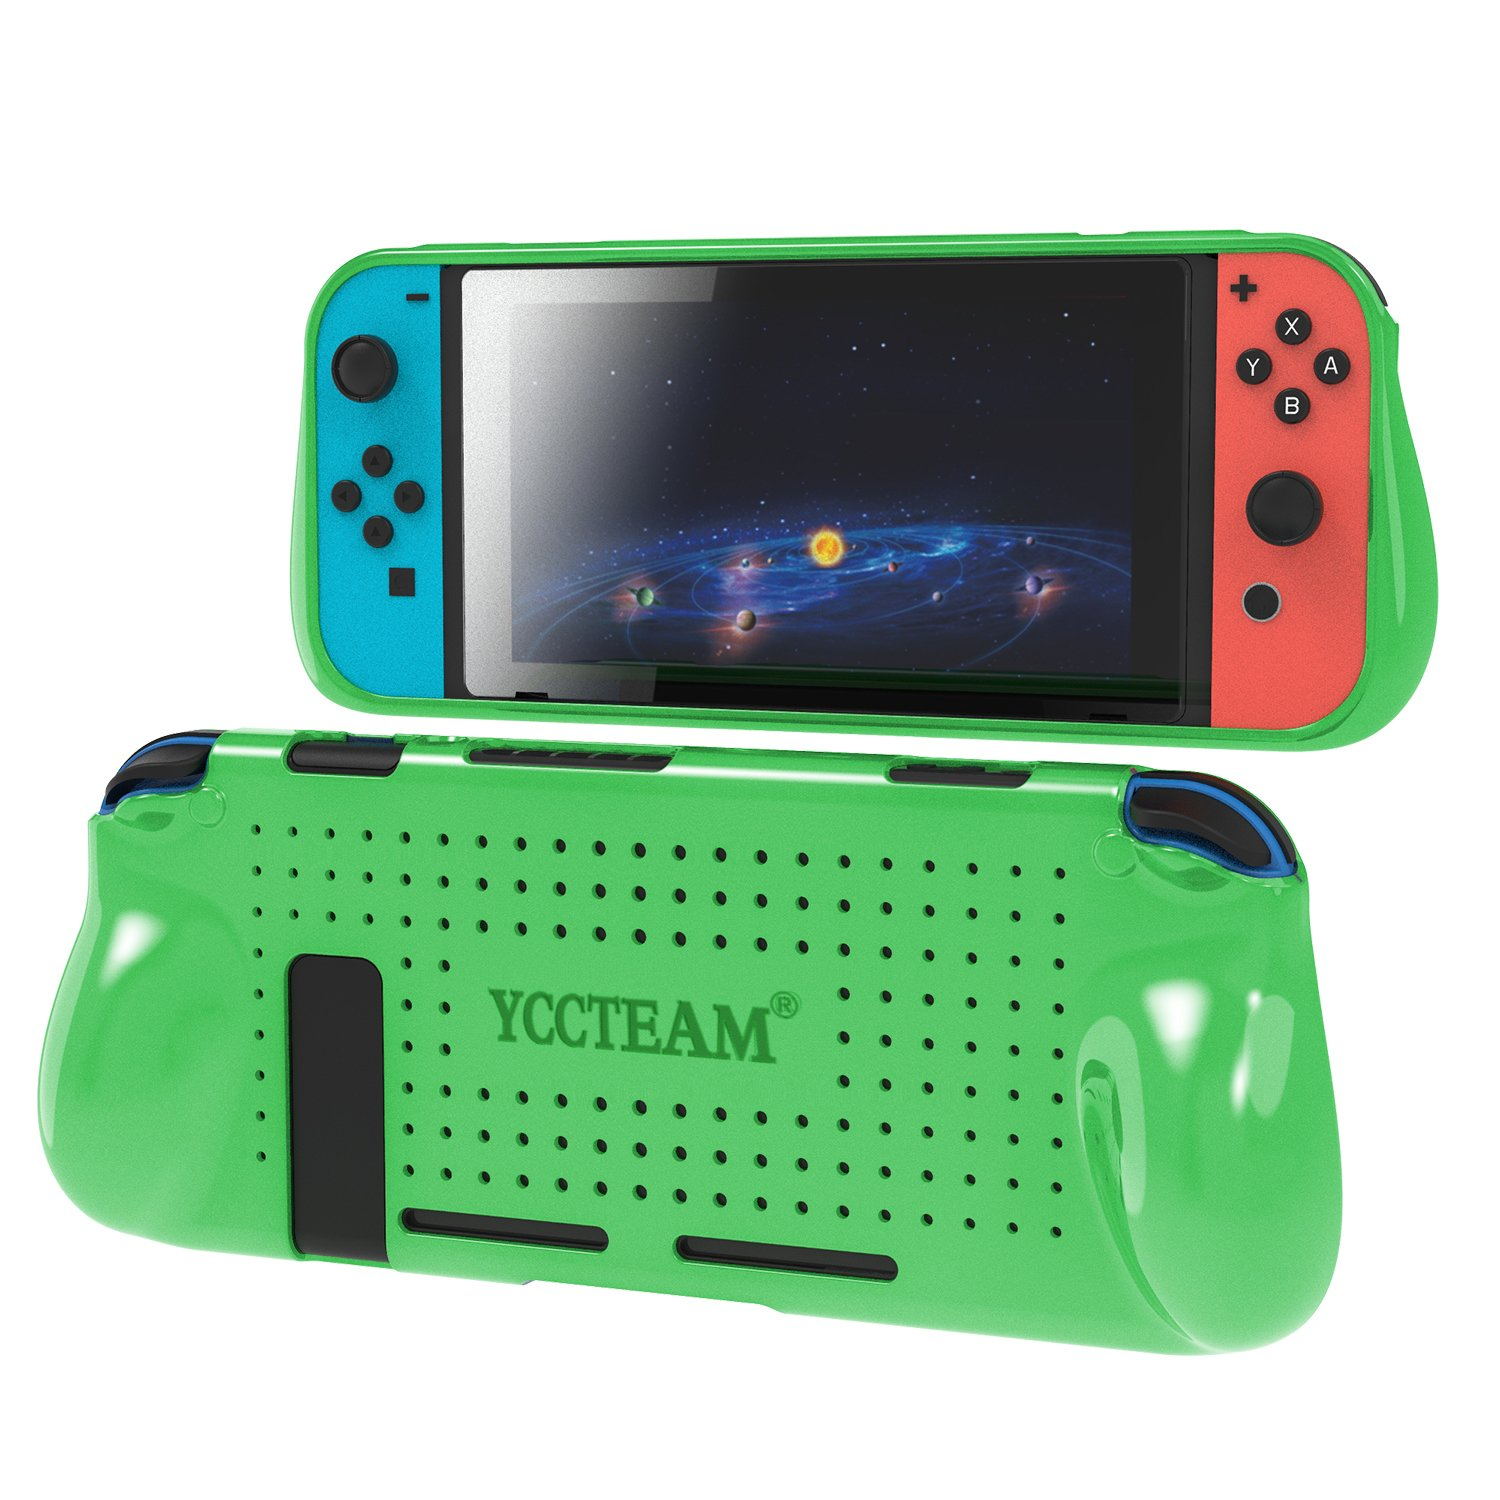 Grip Case for Nintendo Switch, Heat Dissipation Durable Silicone Protective Case Cover for Nintendo Switch Console 2017 with Comfortable Padded Hand Grips (Green)